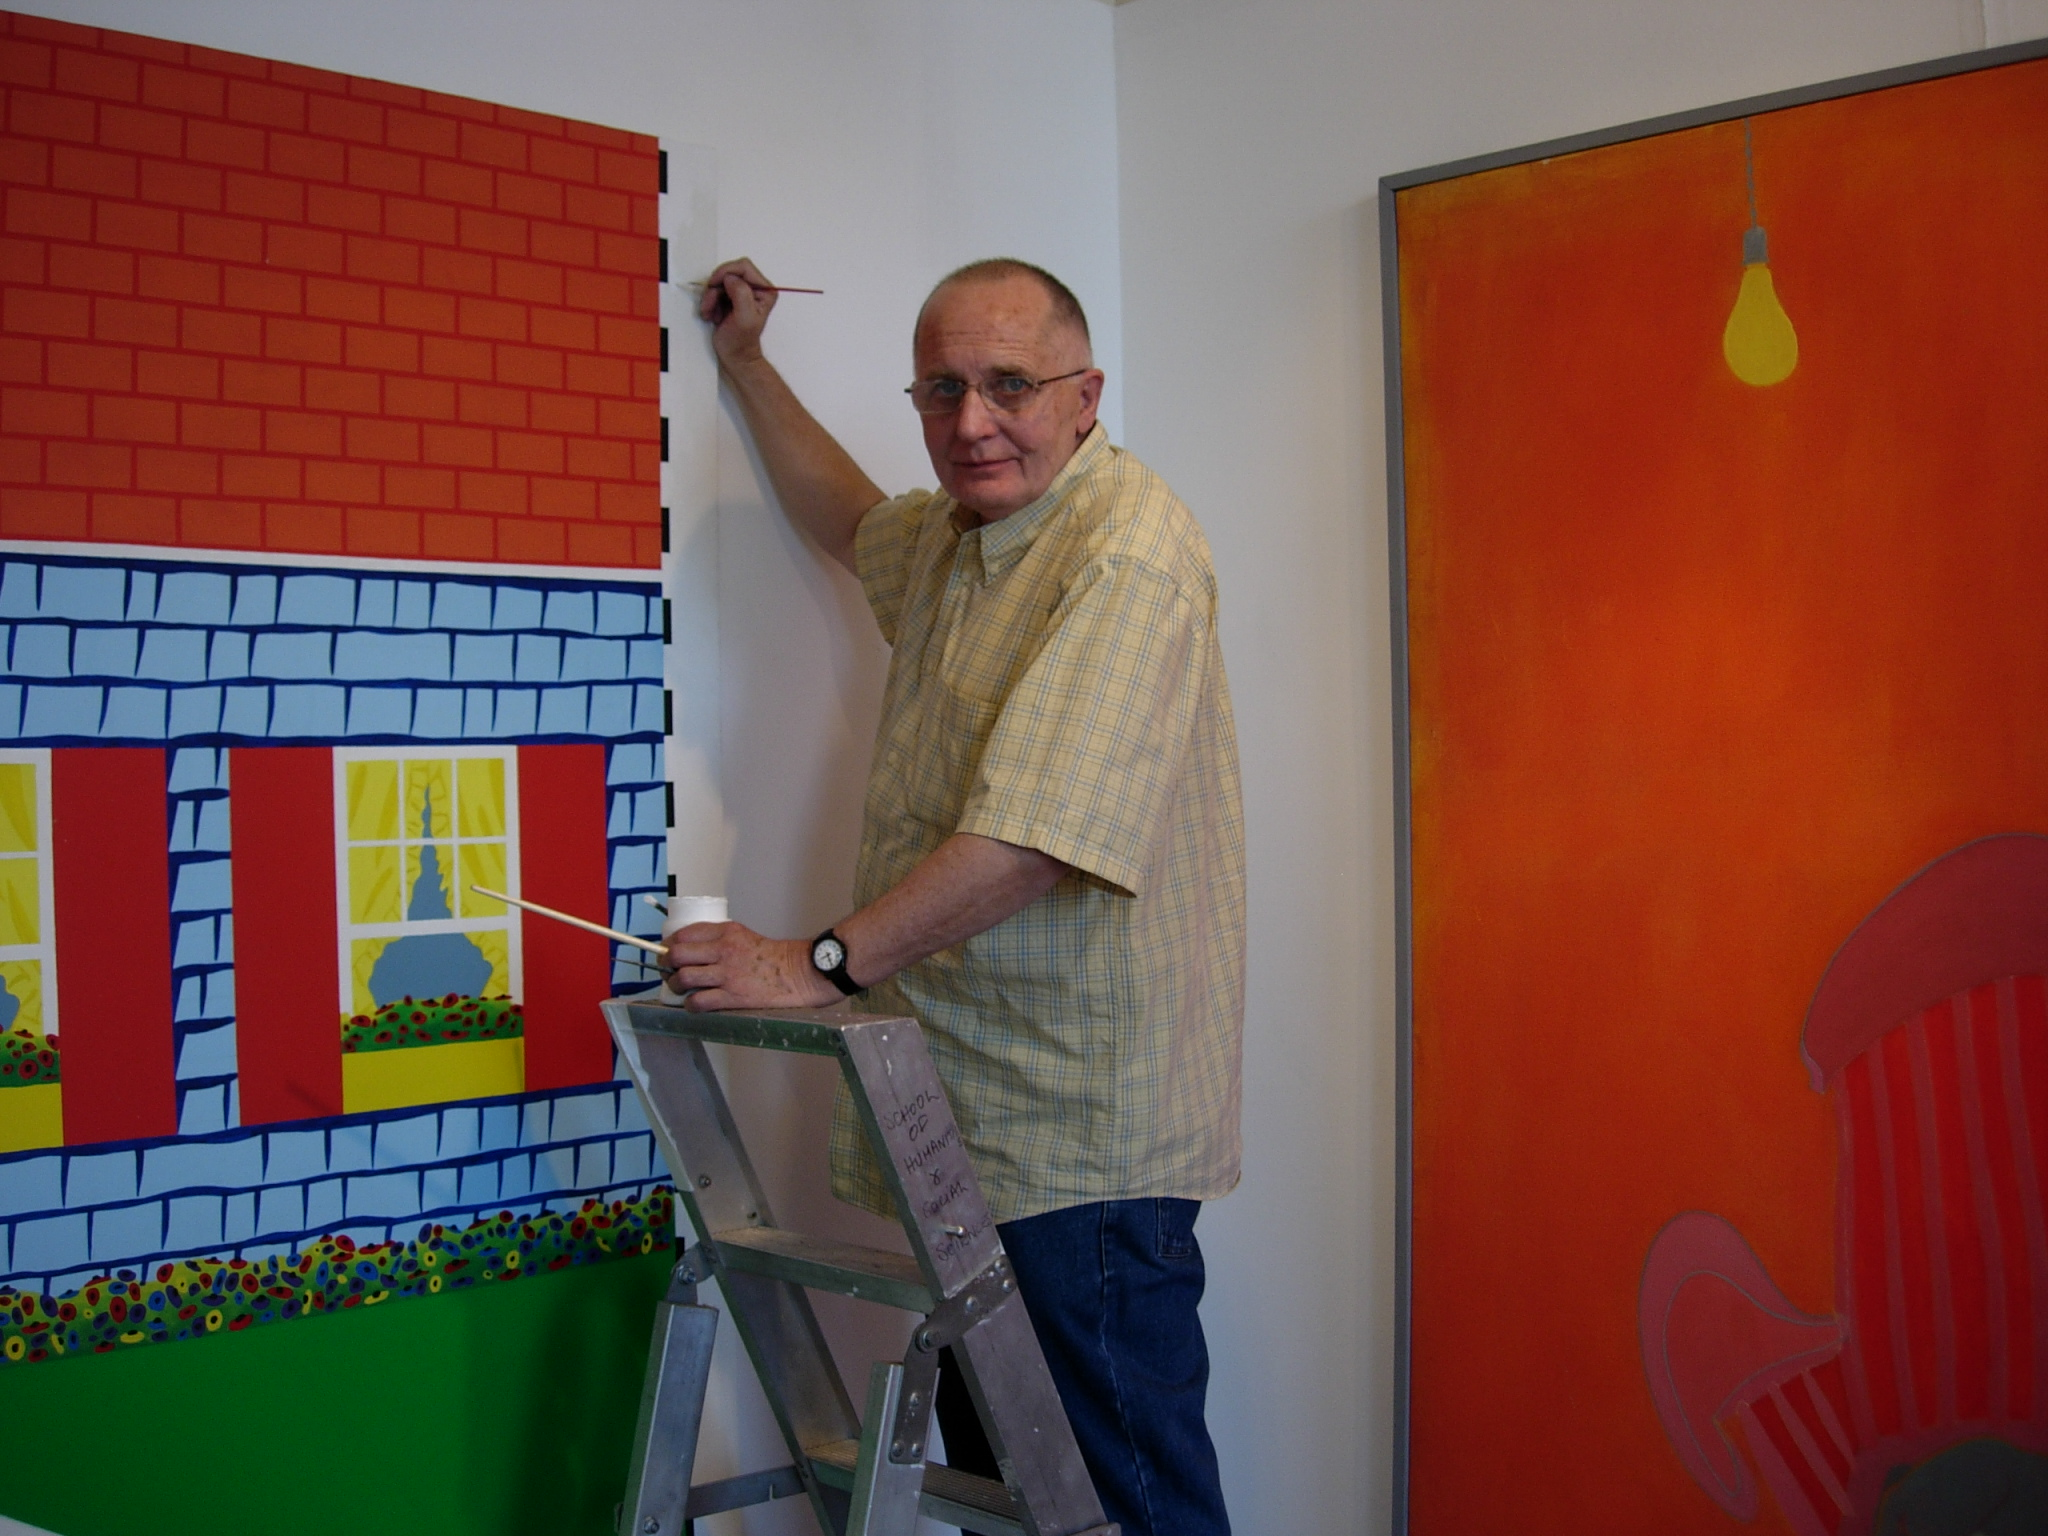 Ken Elias retouching his painting 'Days are where we live' hung alongside an Ernest Zobole painting, Zobole Gallery 2006